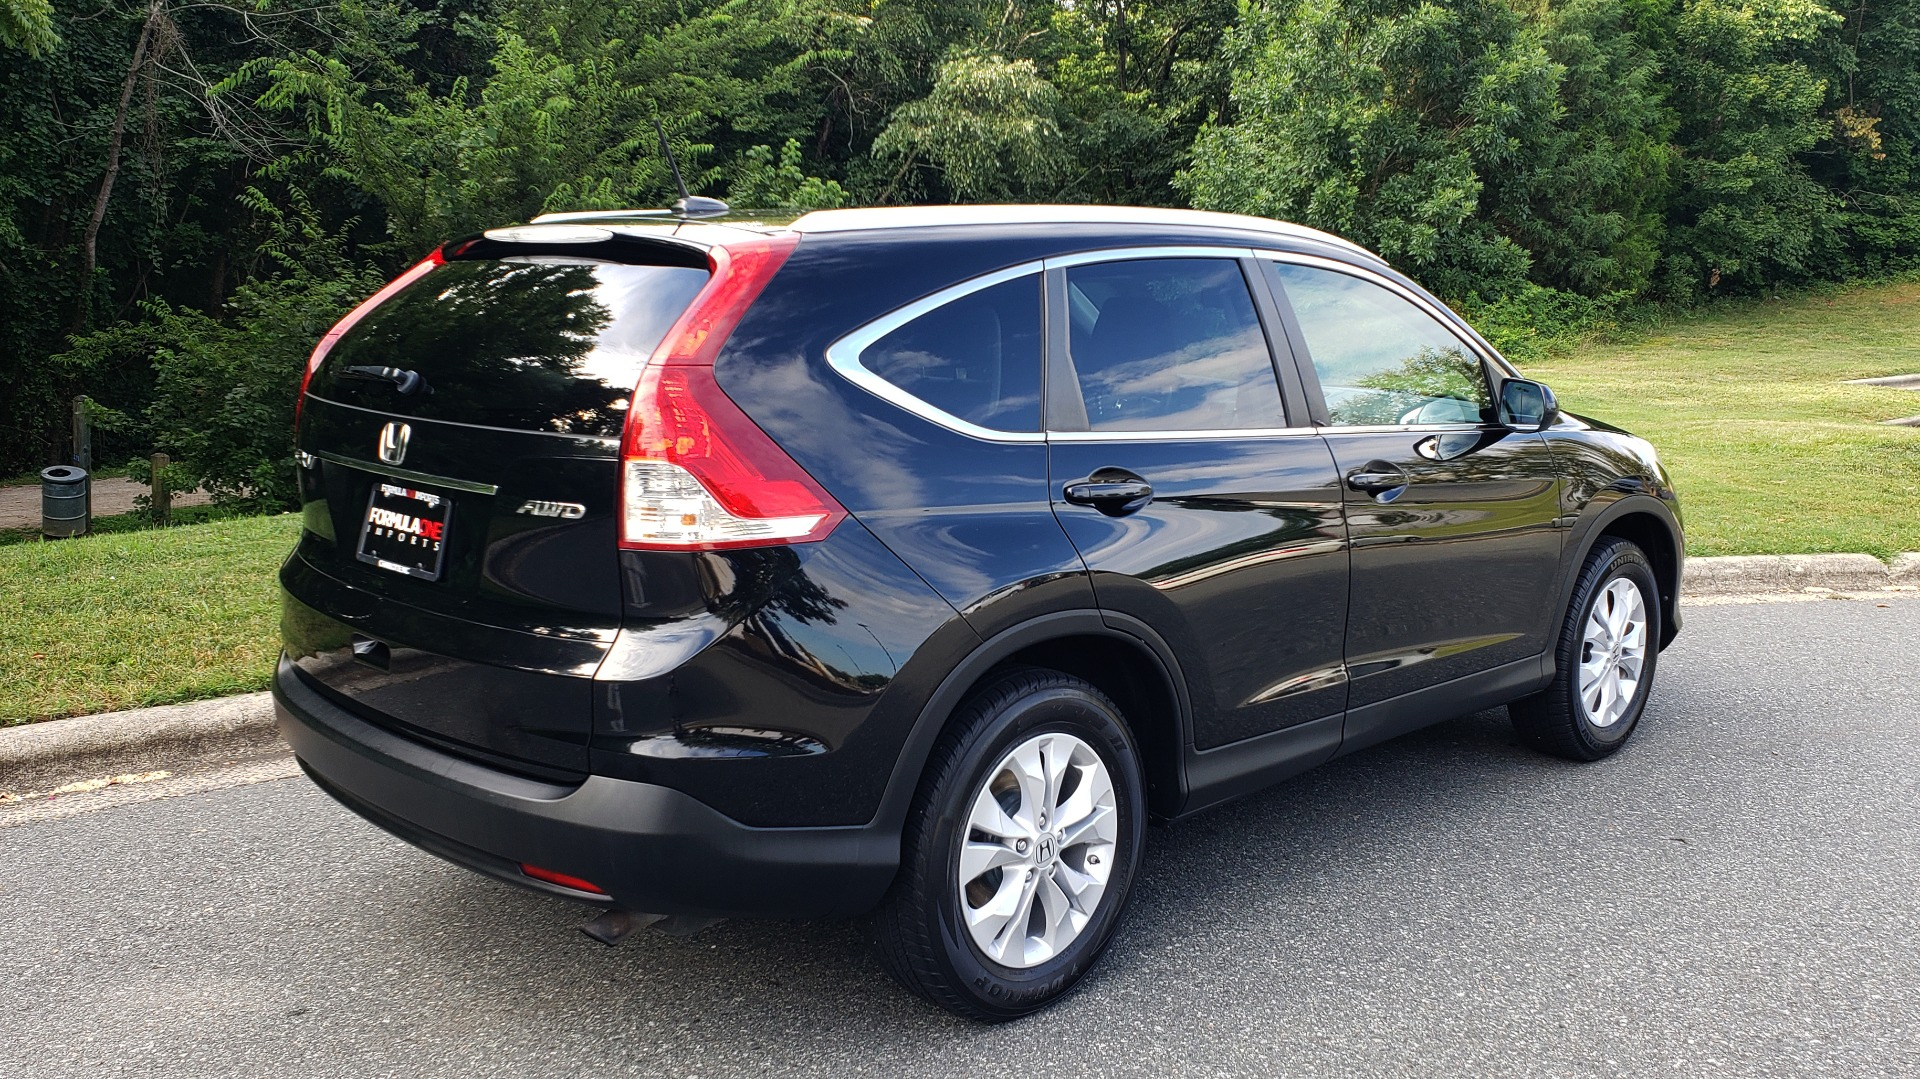 Used 2012 Honda CR-V EX-L / AWD / 5DR / SUNROOF / HEATED SEATS / REARVIEW for sale Sold at Formula Imports in Charlotte NC 28227 6